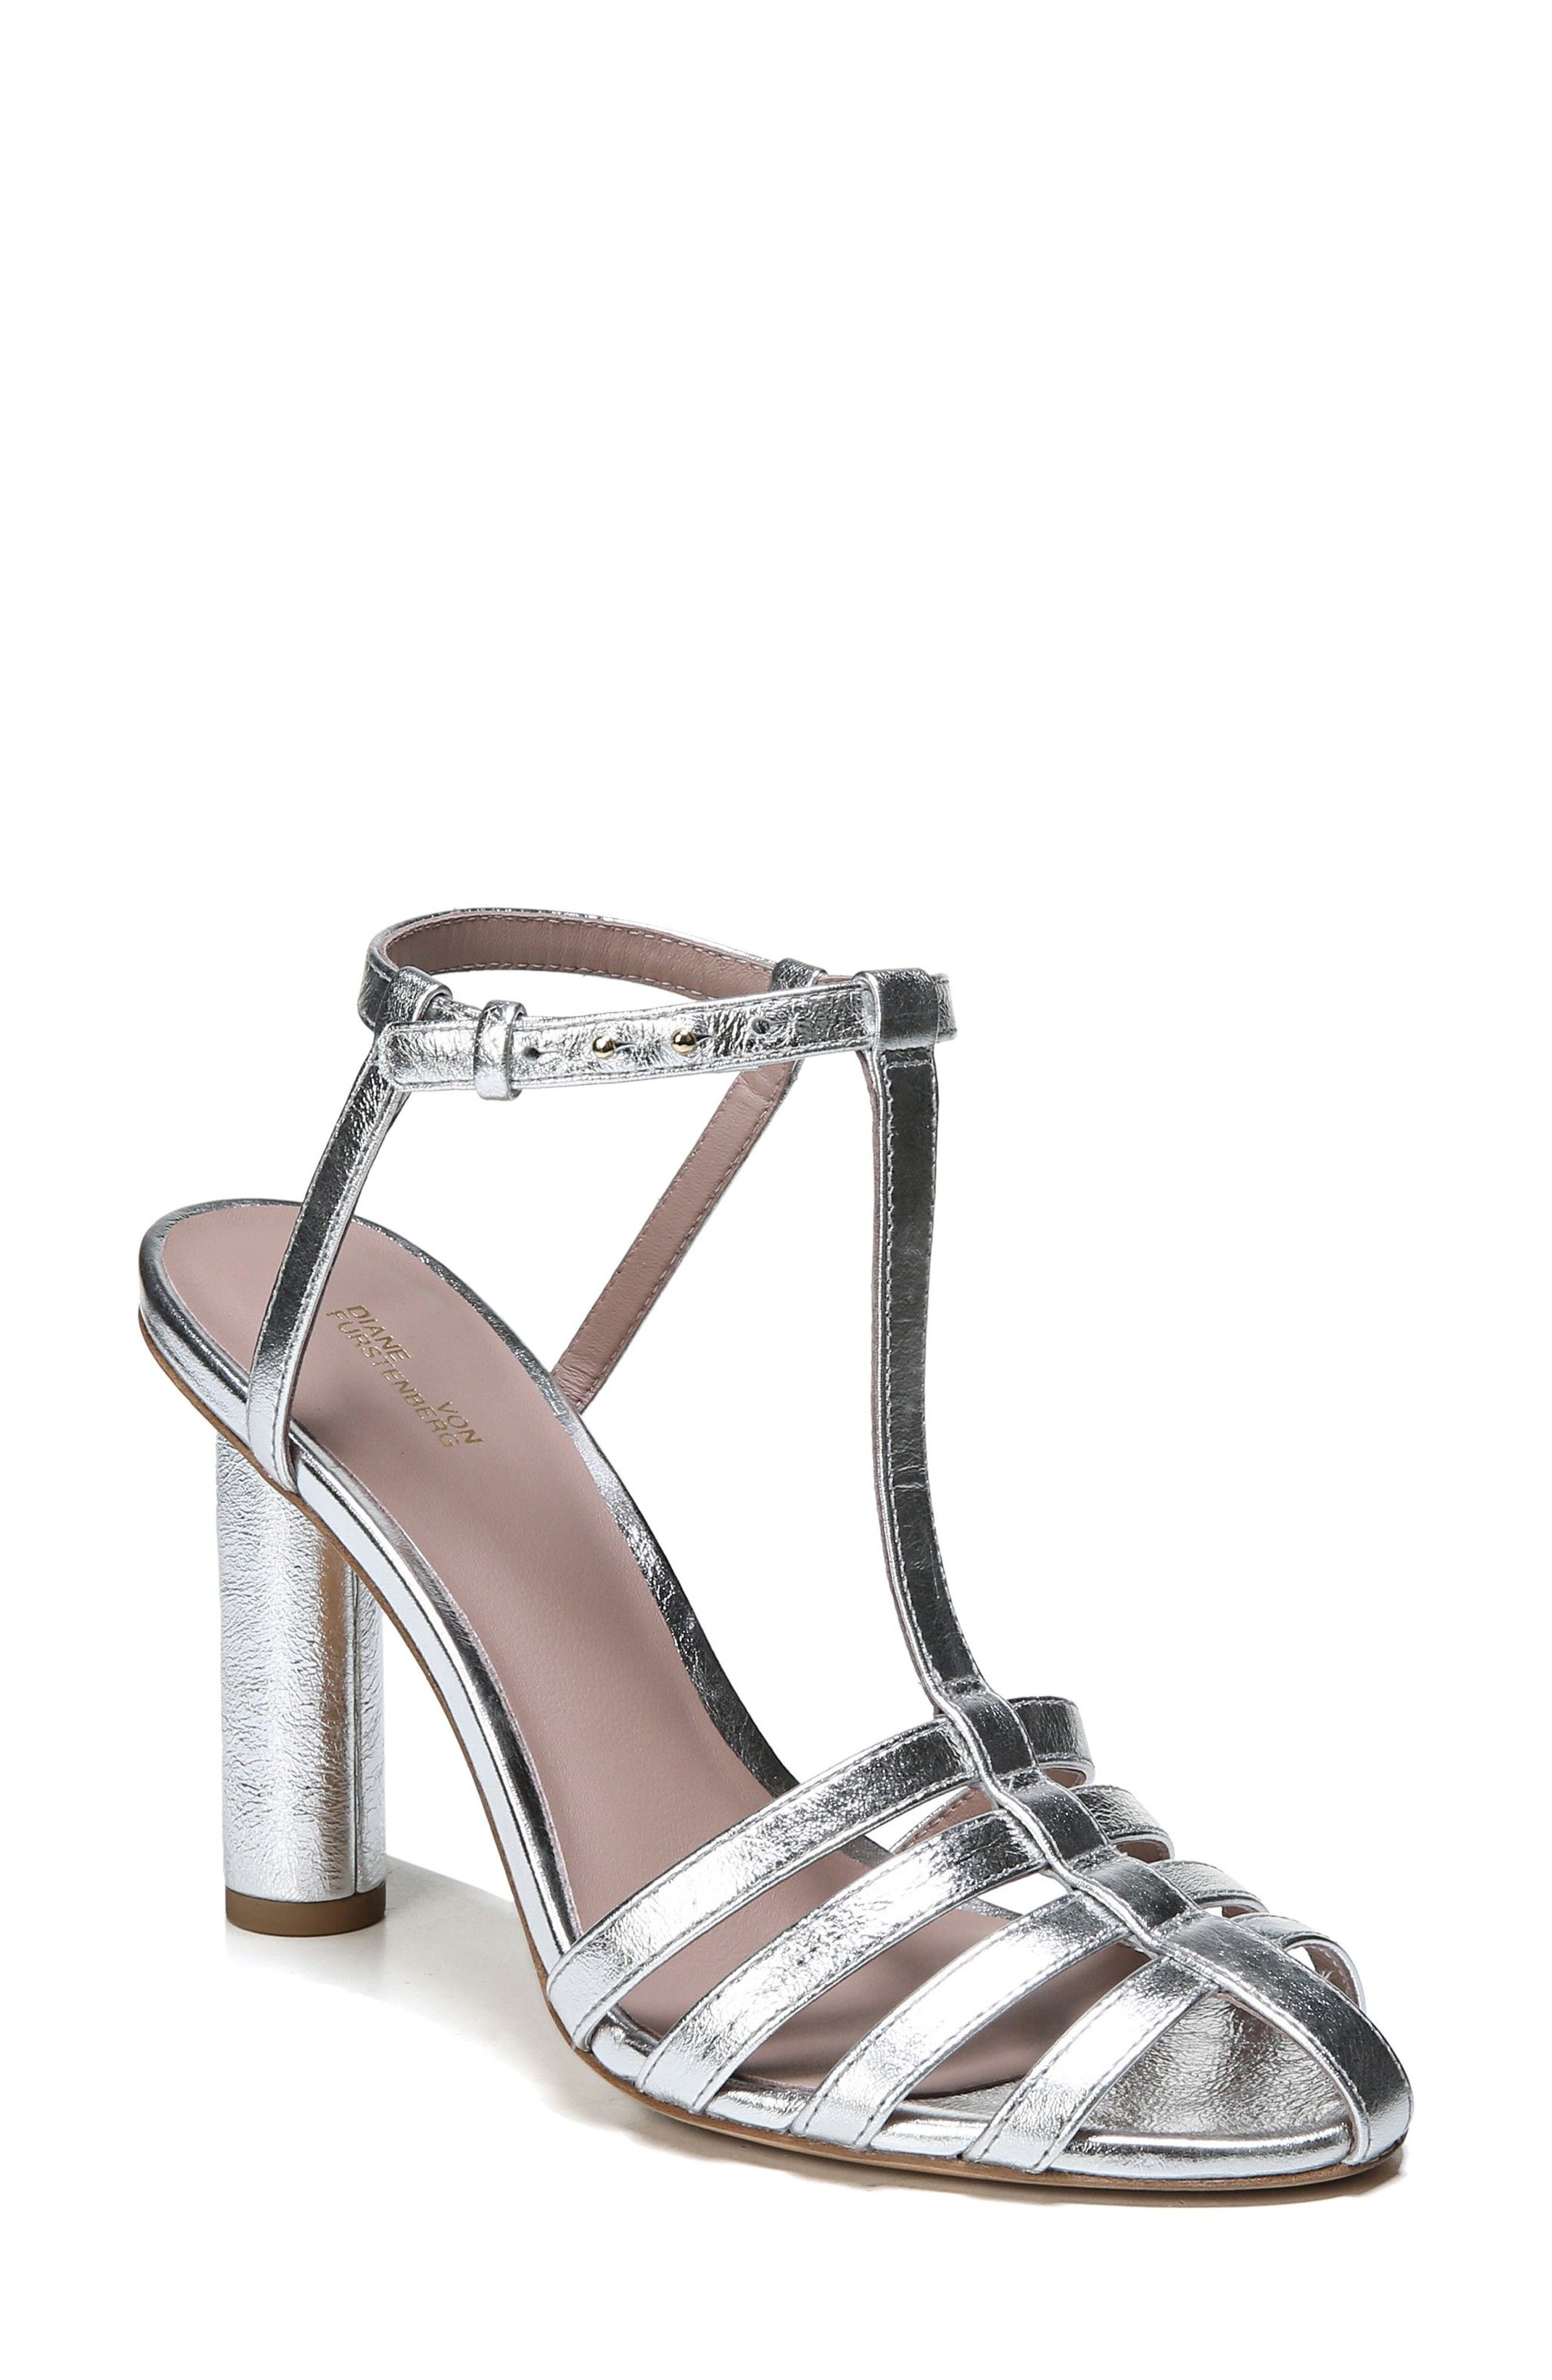 Alternate Image 1 Selected - Diane von Furstenberg Eva T-Strap Sandal (Women)